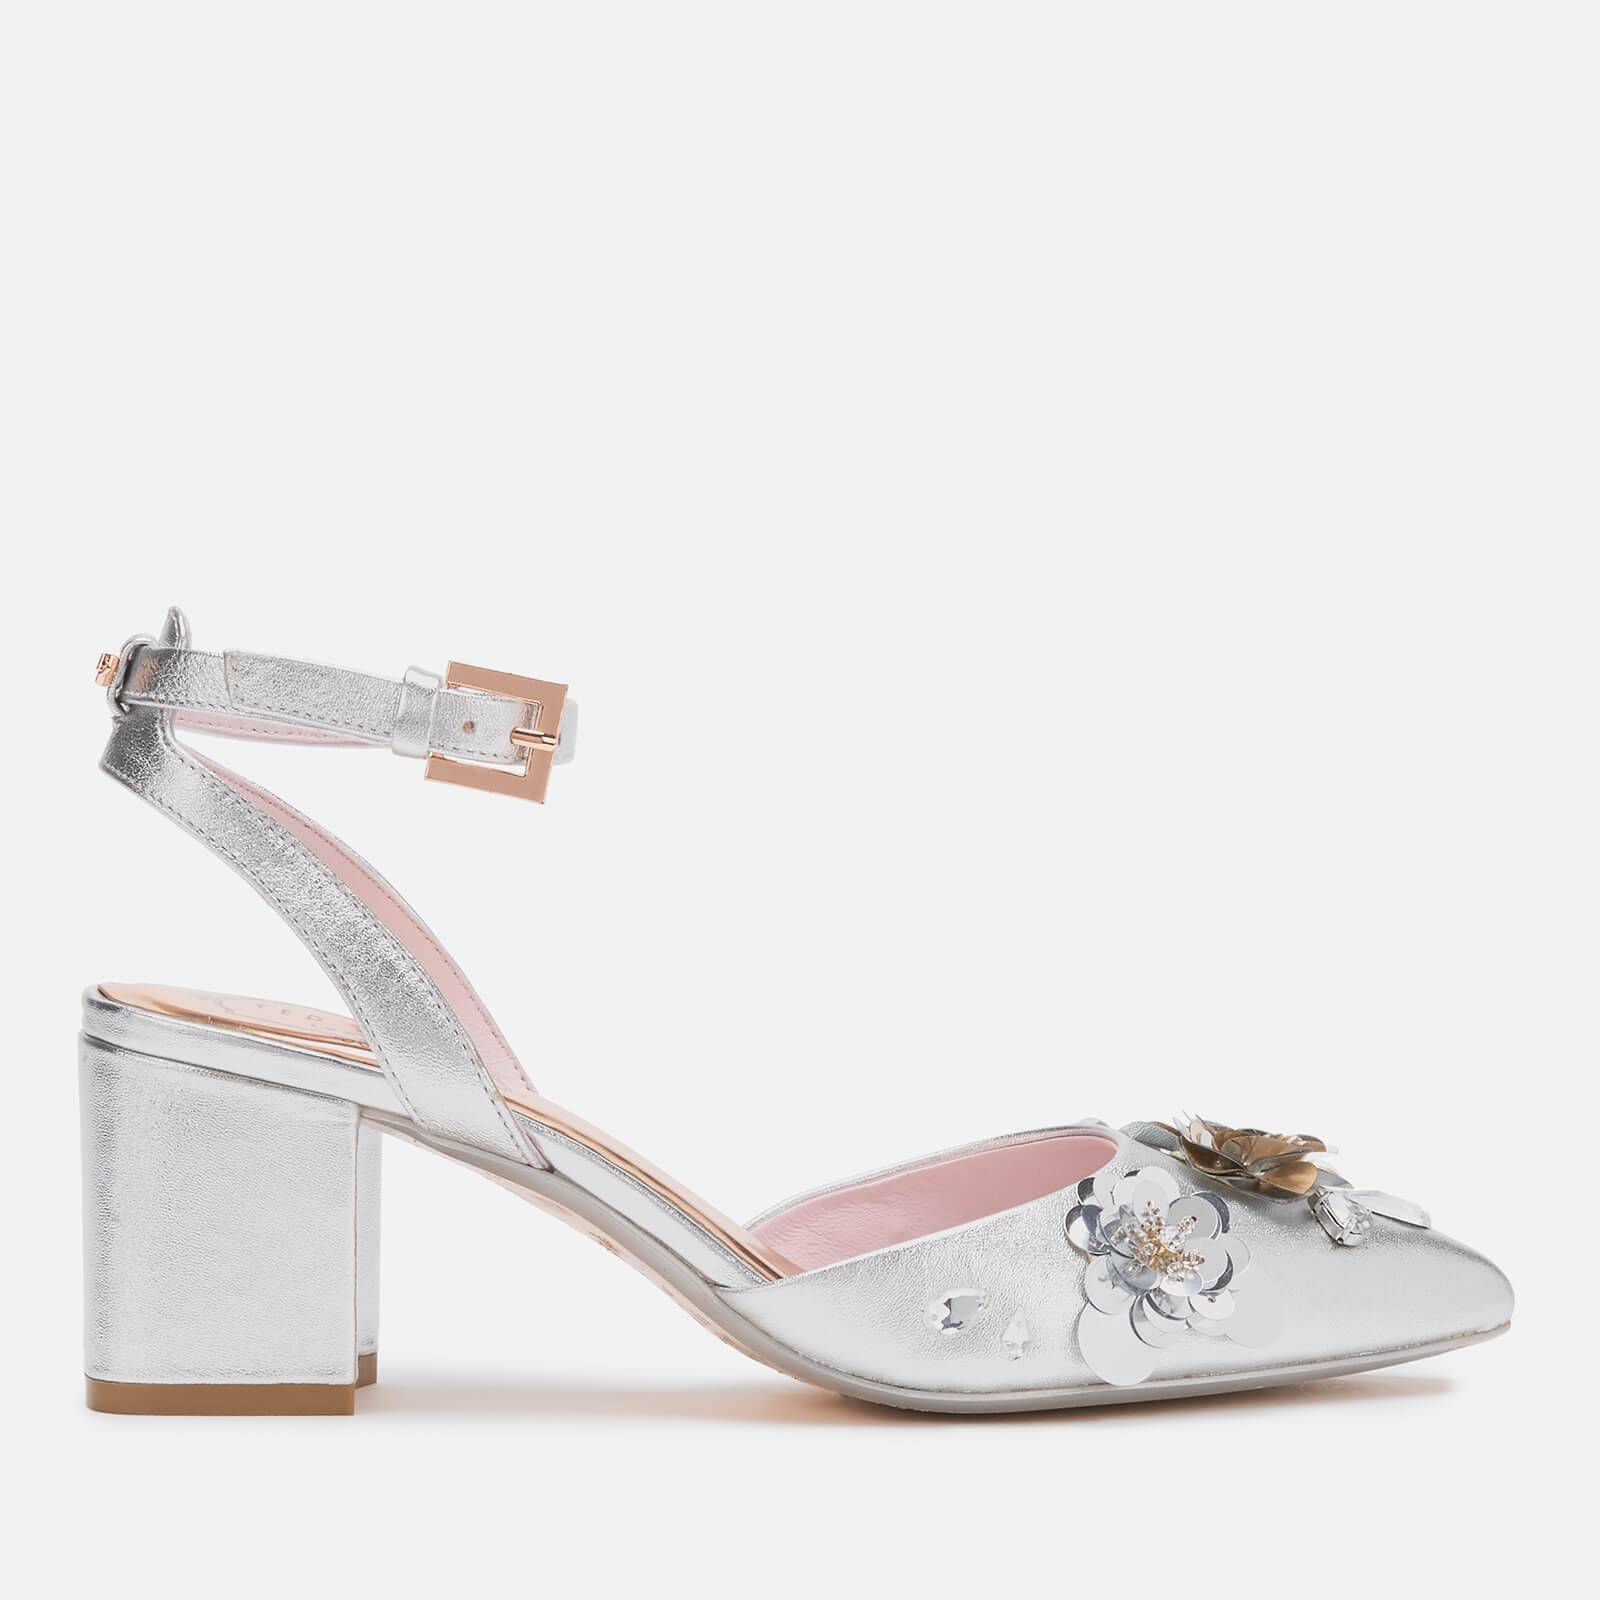 Ted Baker Women's Odesca Floral Embellished Block Heeled Sandals - Silver - UK 8